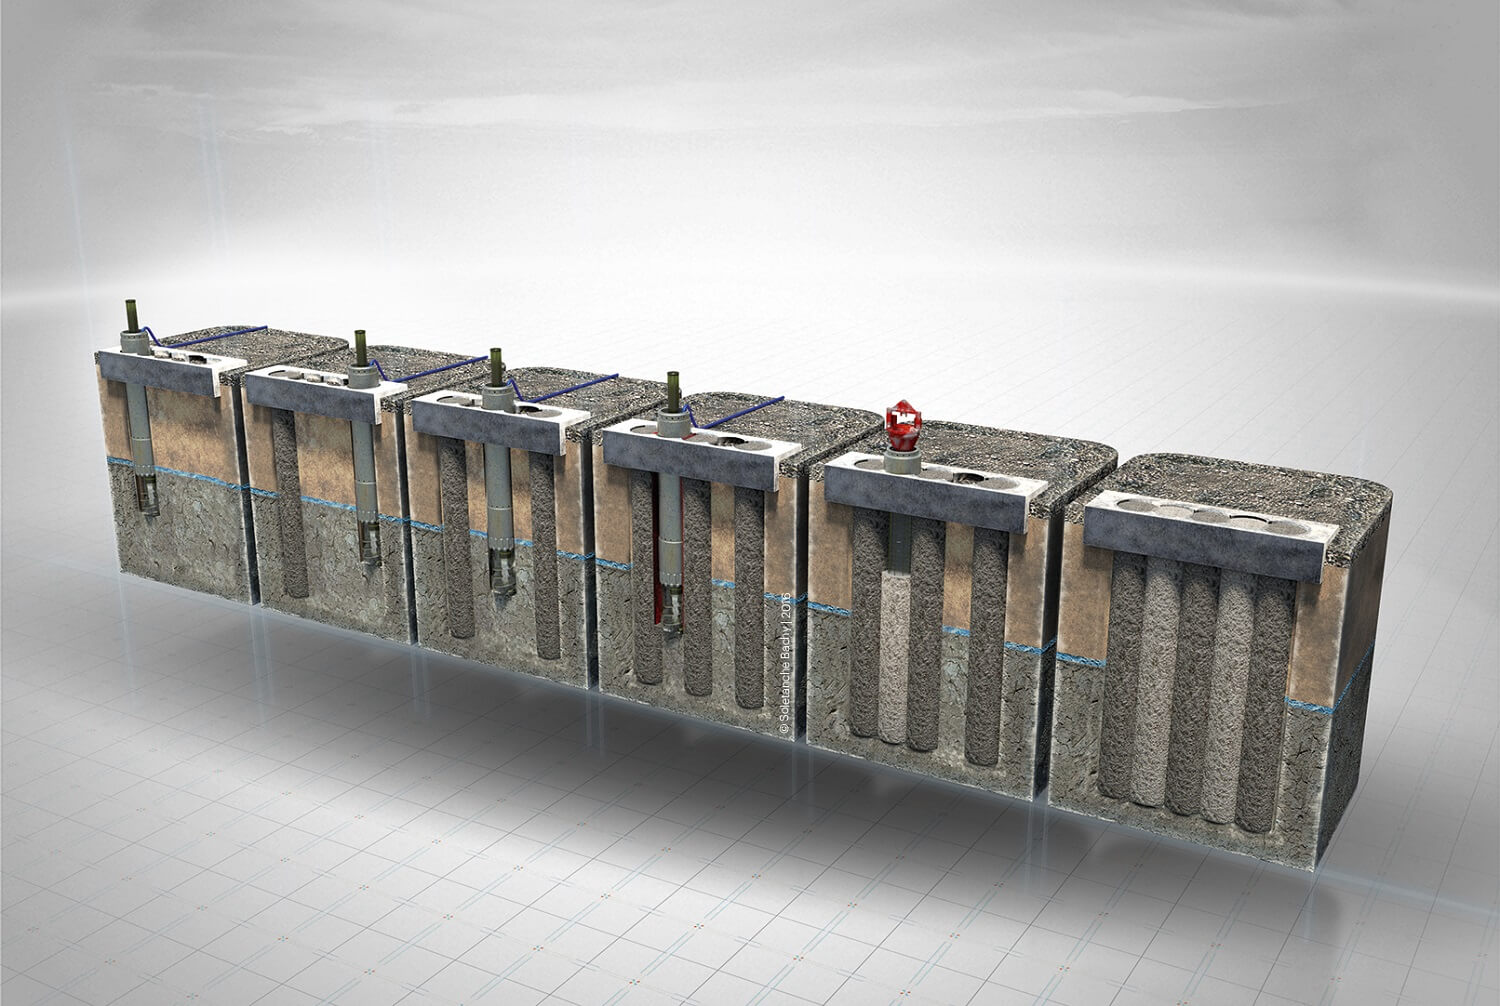 Retaining Wall Solution - Secant Piled Wall (CGI)